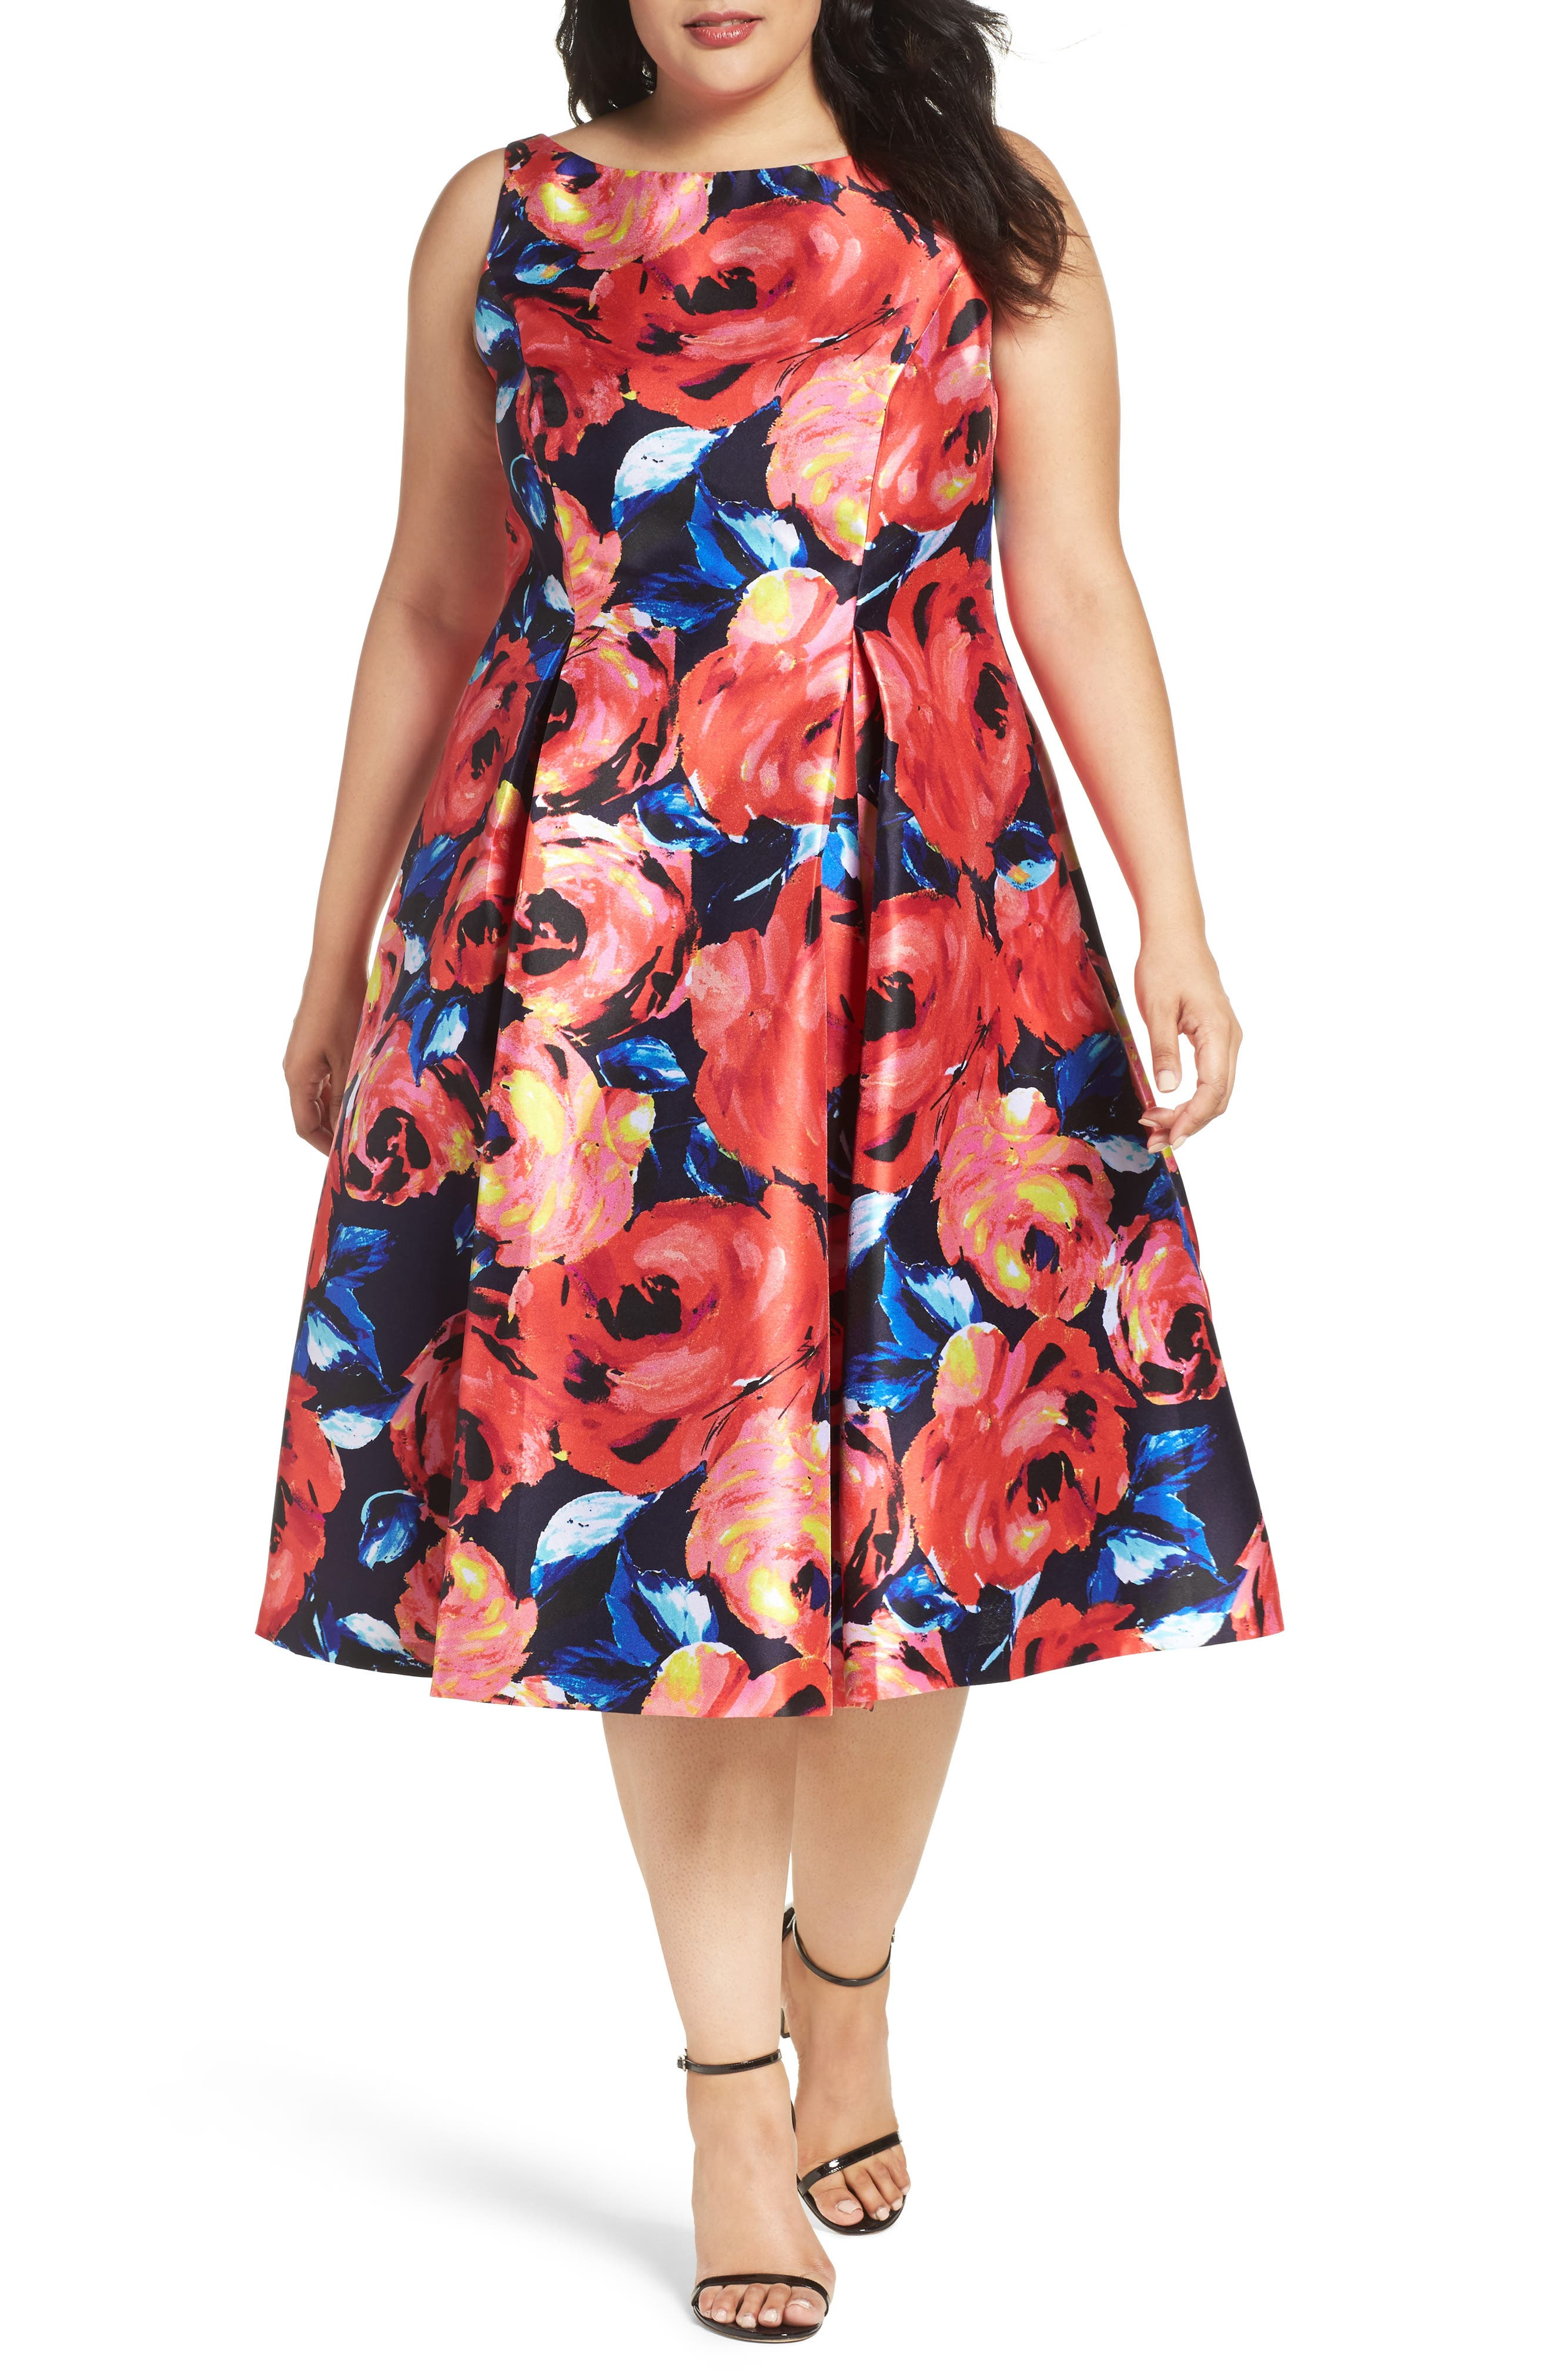 Adrianna Papell Floral Mikado Party Dress (Plus Size)